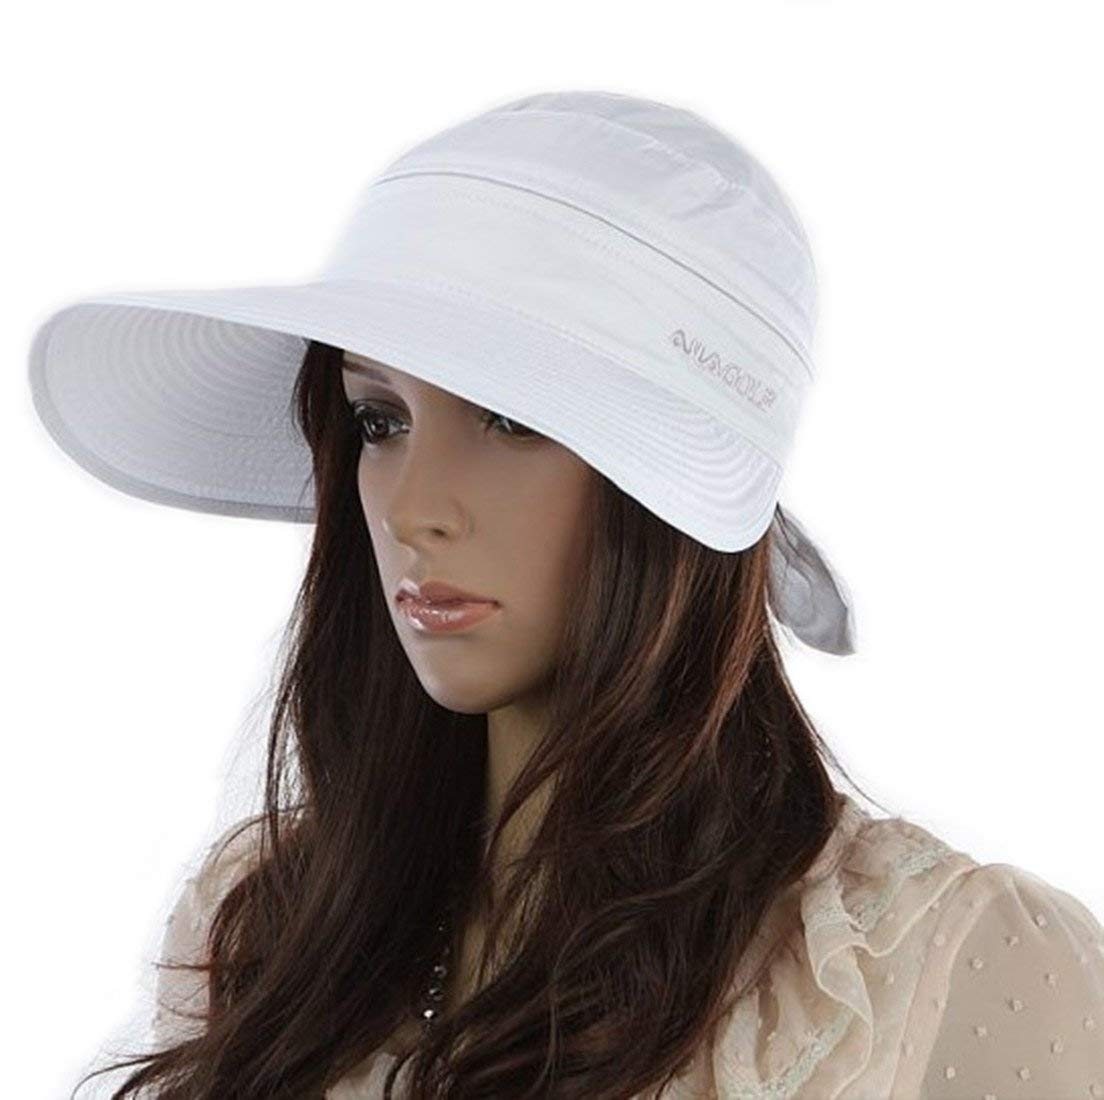 f4ff38b36eda1 Get Quotations · Women Wide Brim 2in1 Combined Golf and Tennis Sun Cap and  Visor